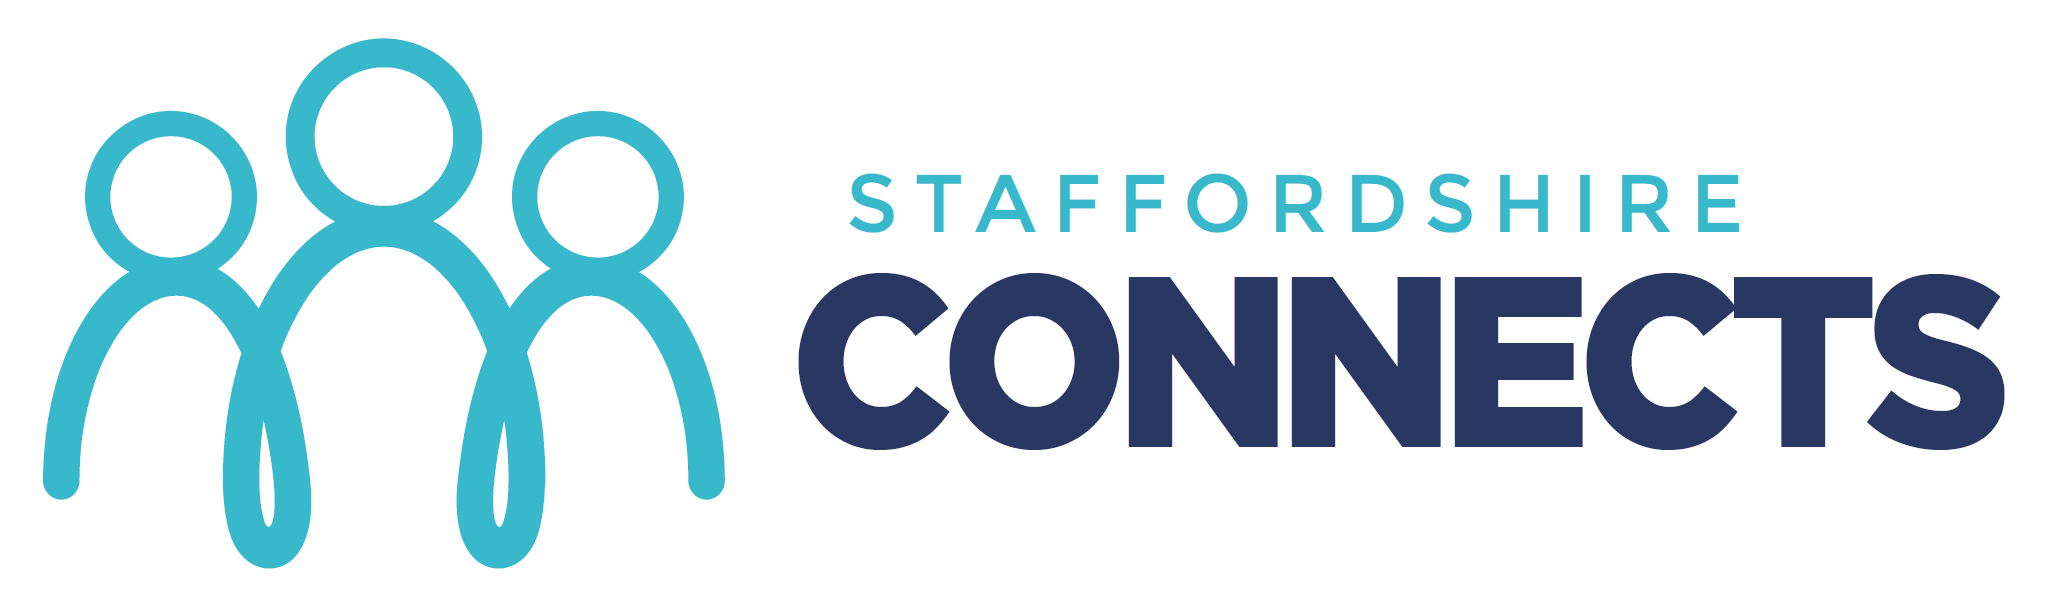 Staffordshire Connects